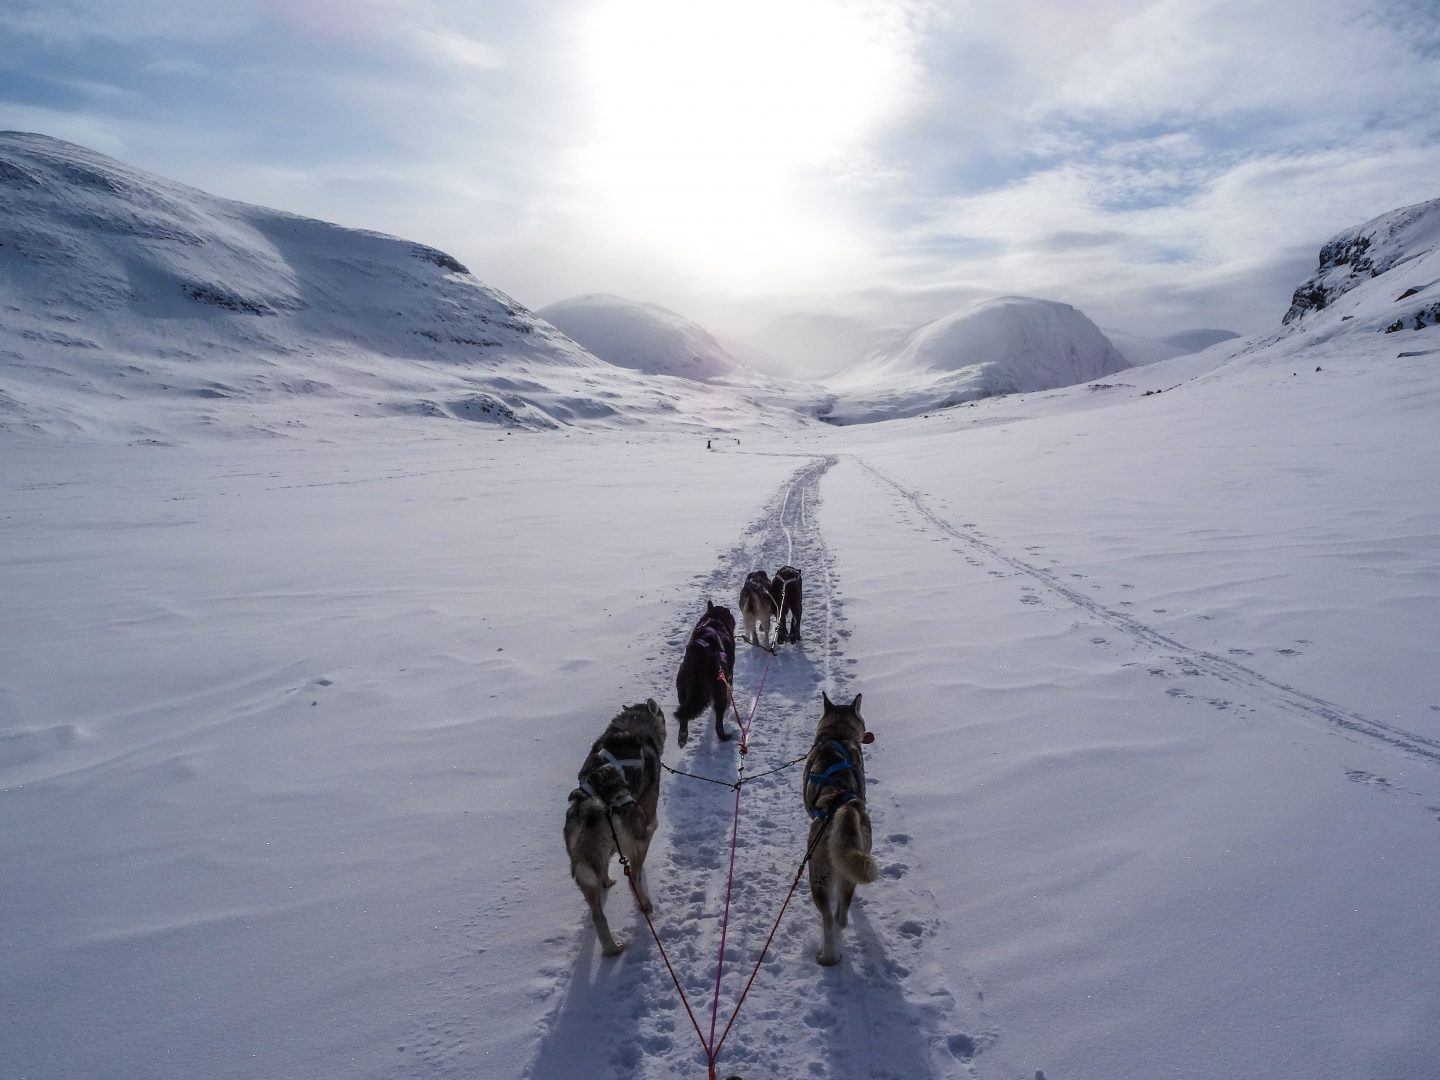 The Places We Wish To Go… Lapland